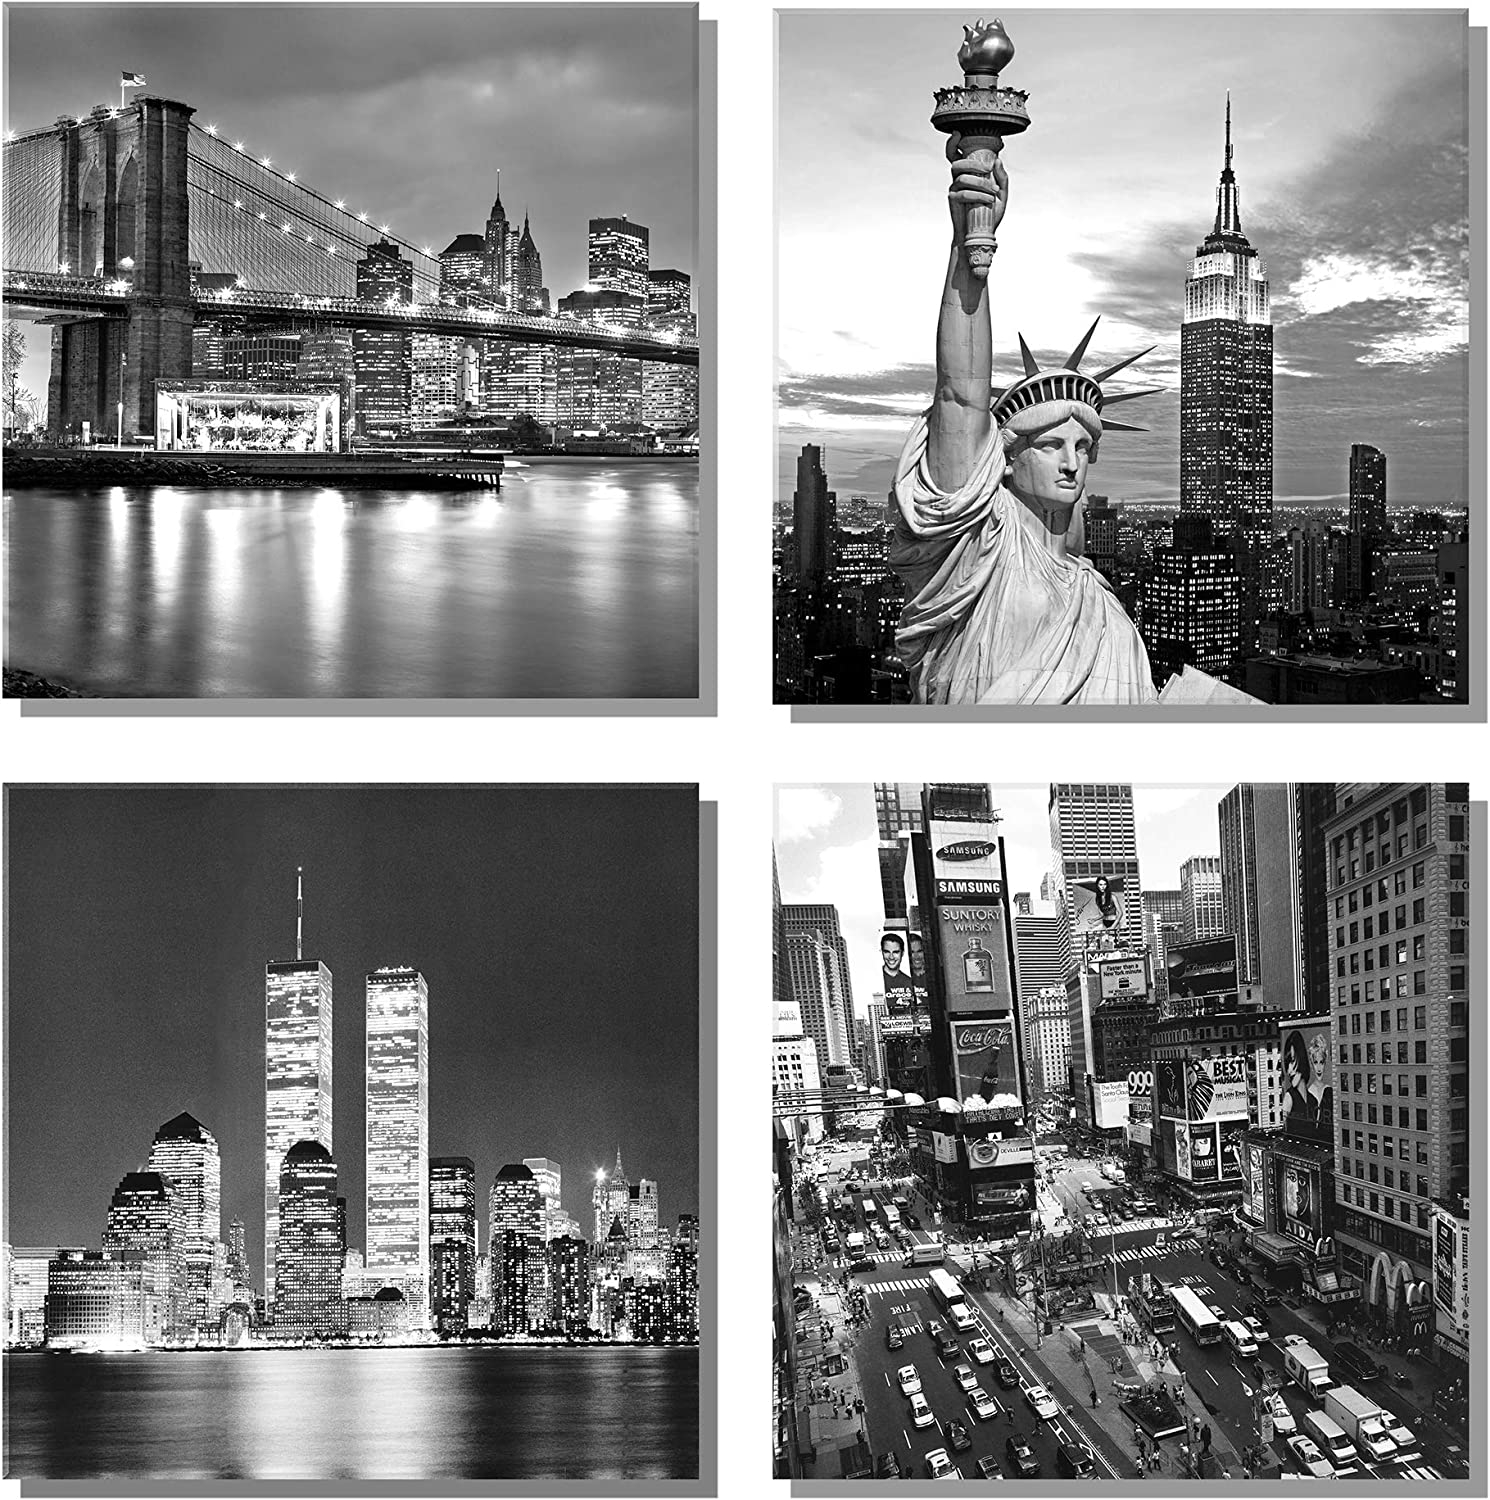 """789Art - New York City Canvas Art Black and White Brooklyn Bridge Statue of Liberty Empire State Building Contemporary Decorations for Living Room Office Bedroom Home Decor(12""""x 12""""x 4 Panels Framed)"""